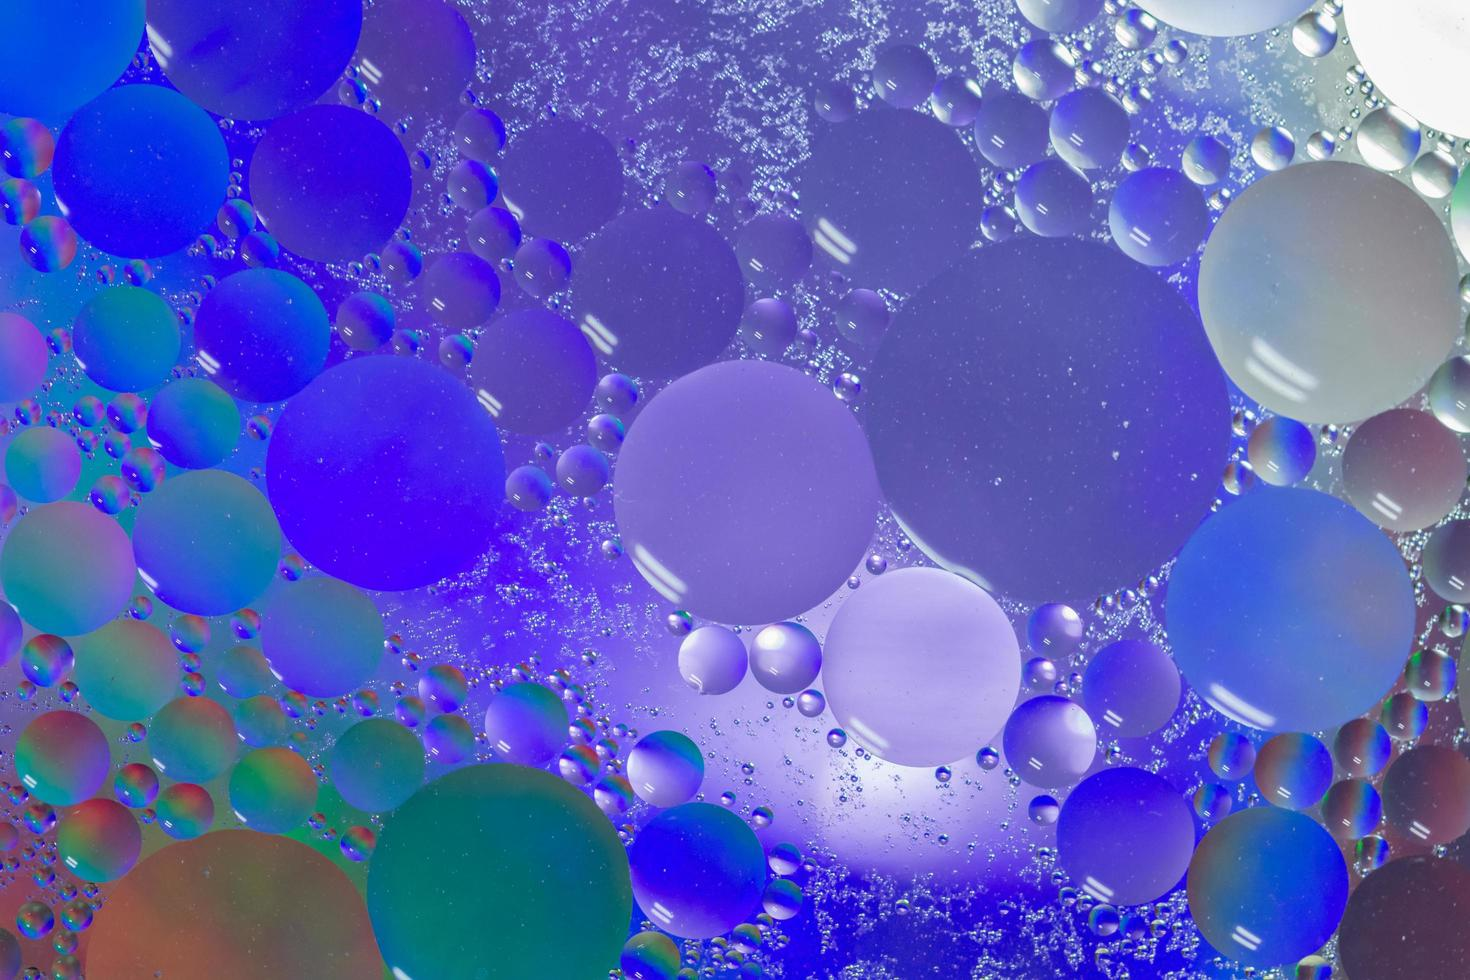 Oil and Water Abstract Macro Background photo